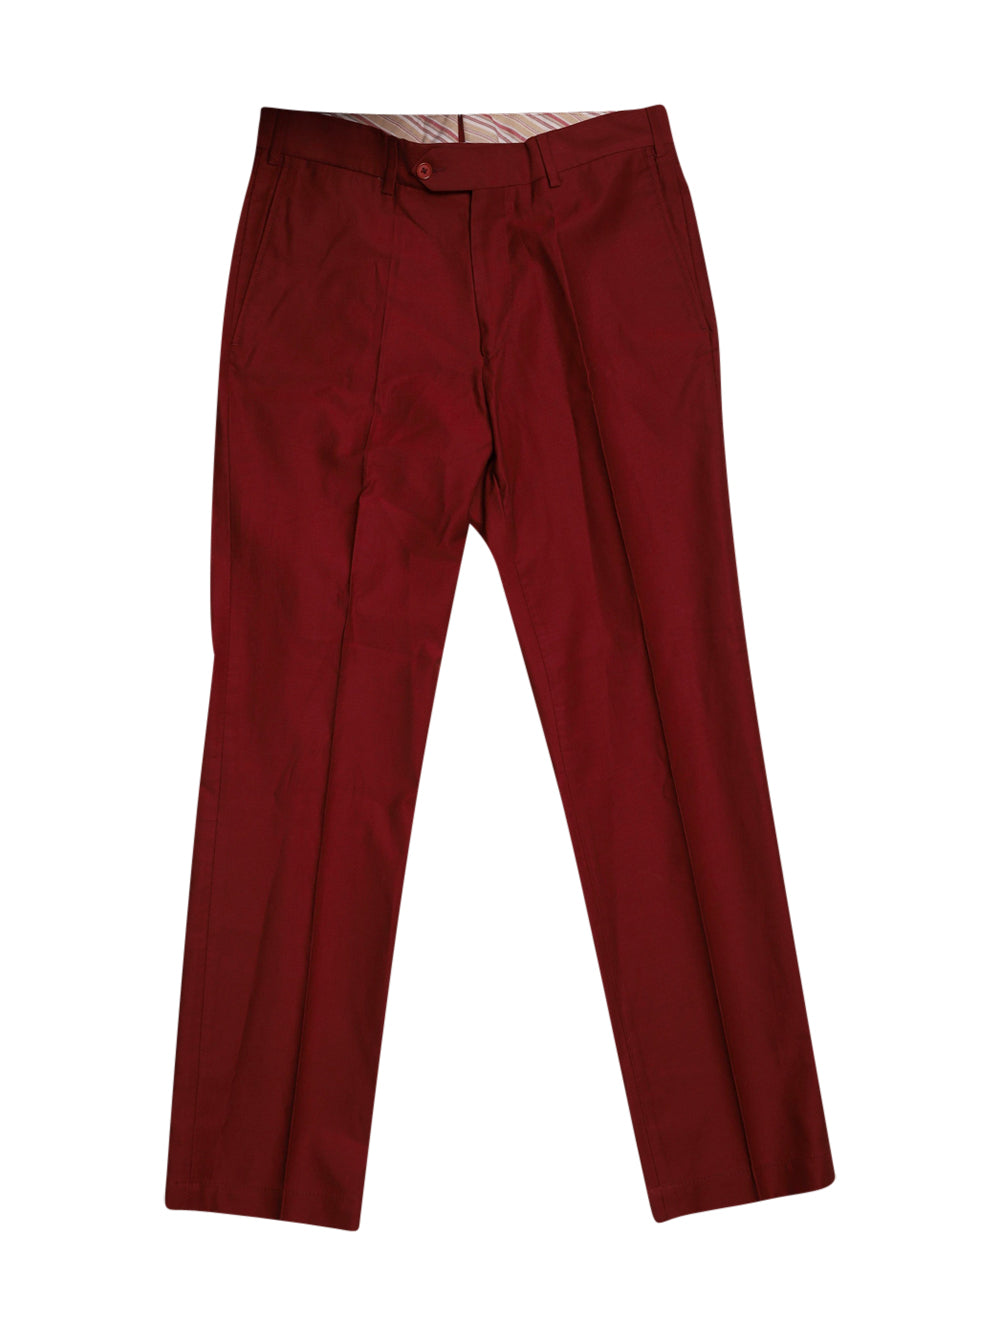 Front photo of Preloved Luca D'altieri (Coin) Red Man's trousers - size 38/M